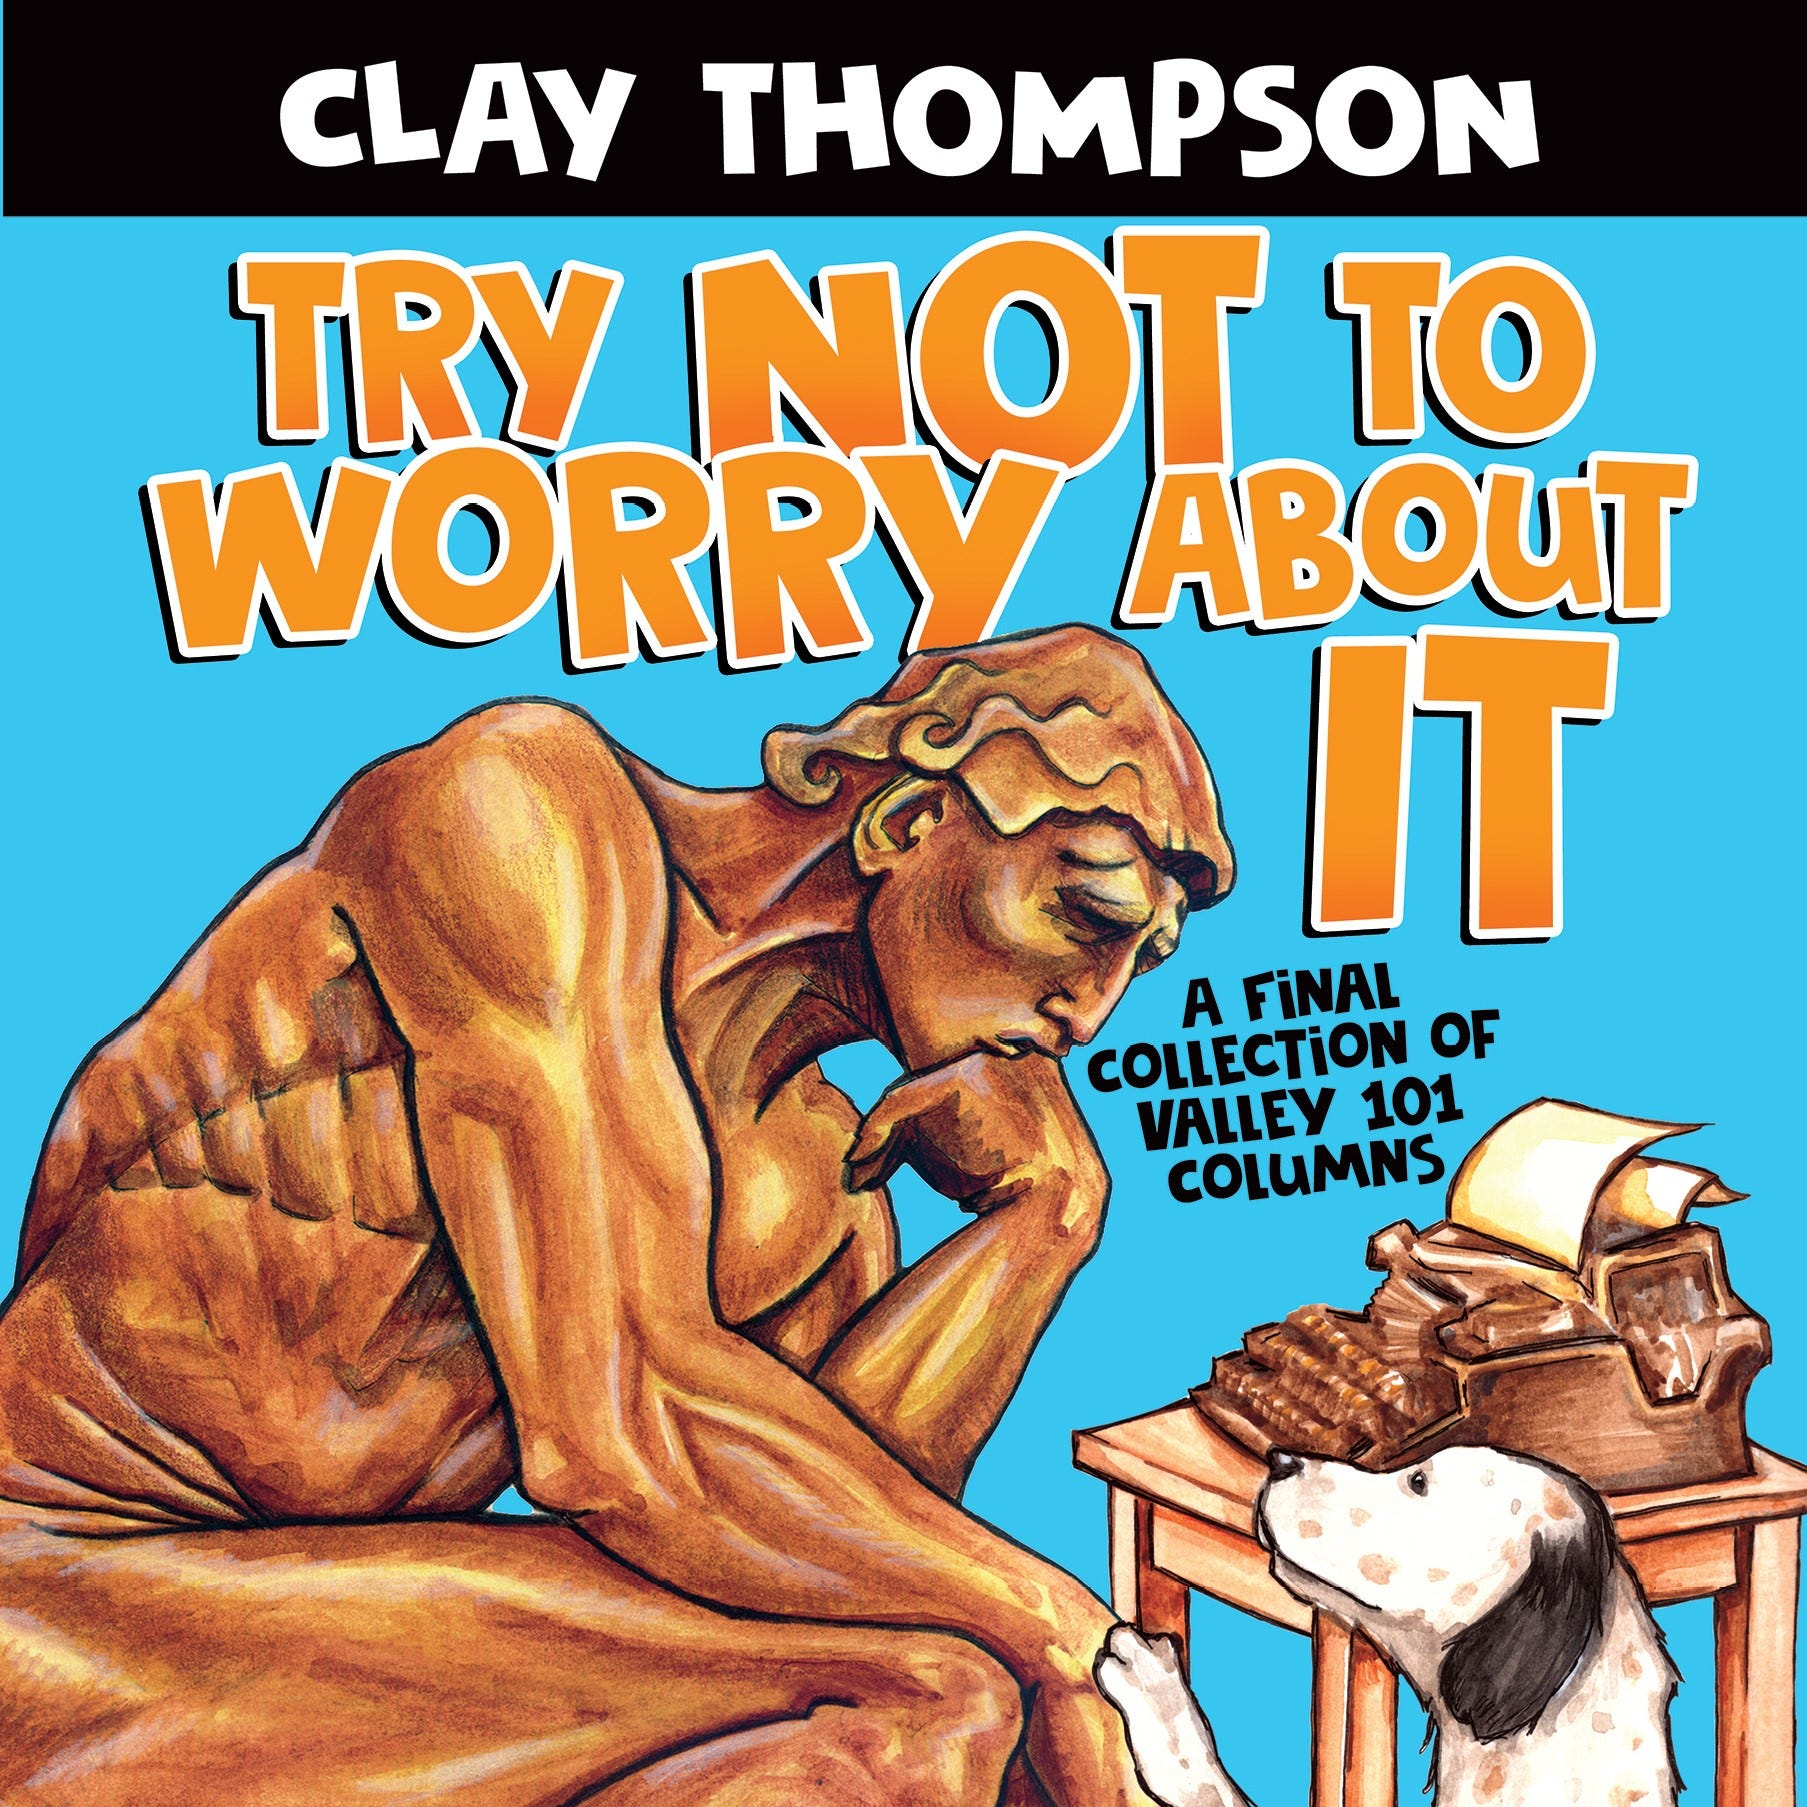 Buy a new book of Clay Thompson's columns to support Season for Sharing, his favorite cause